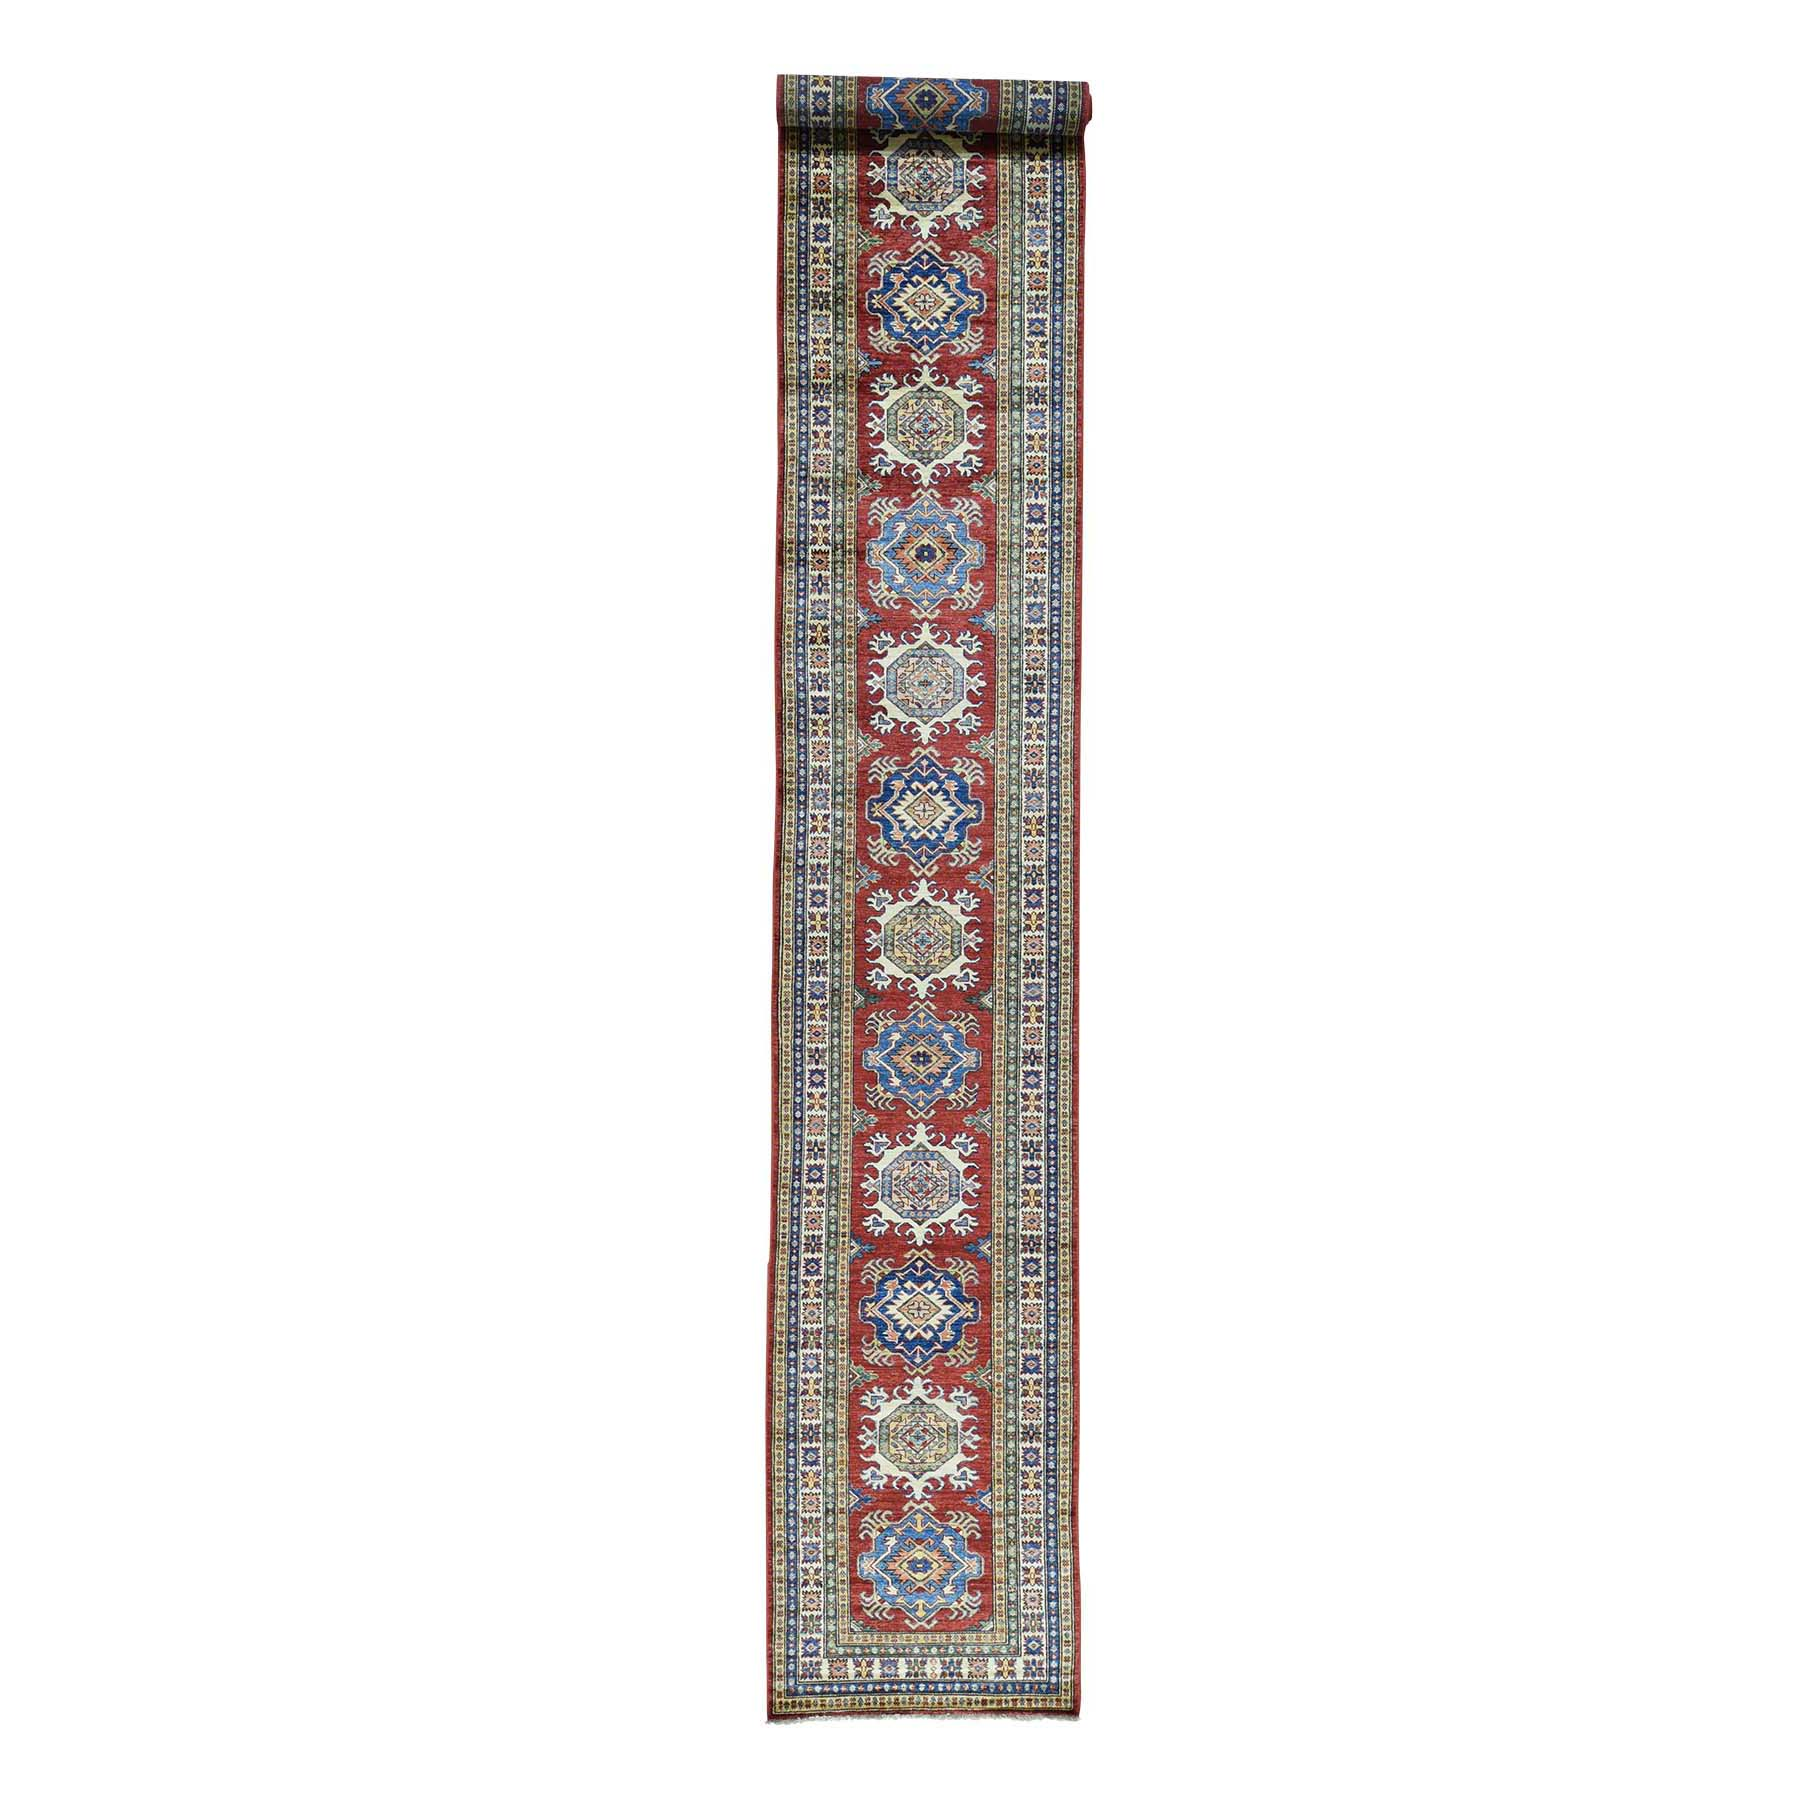 "2'7""X19' Hand-Knotted Tribal Design Super Kazak Xl Runner Oriental Rug moac08e8"